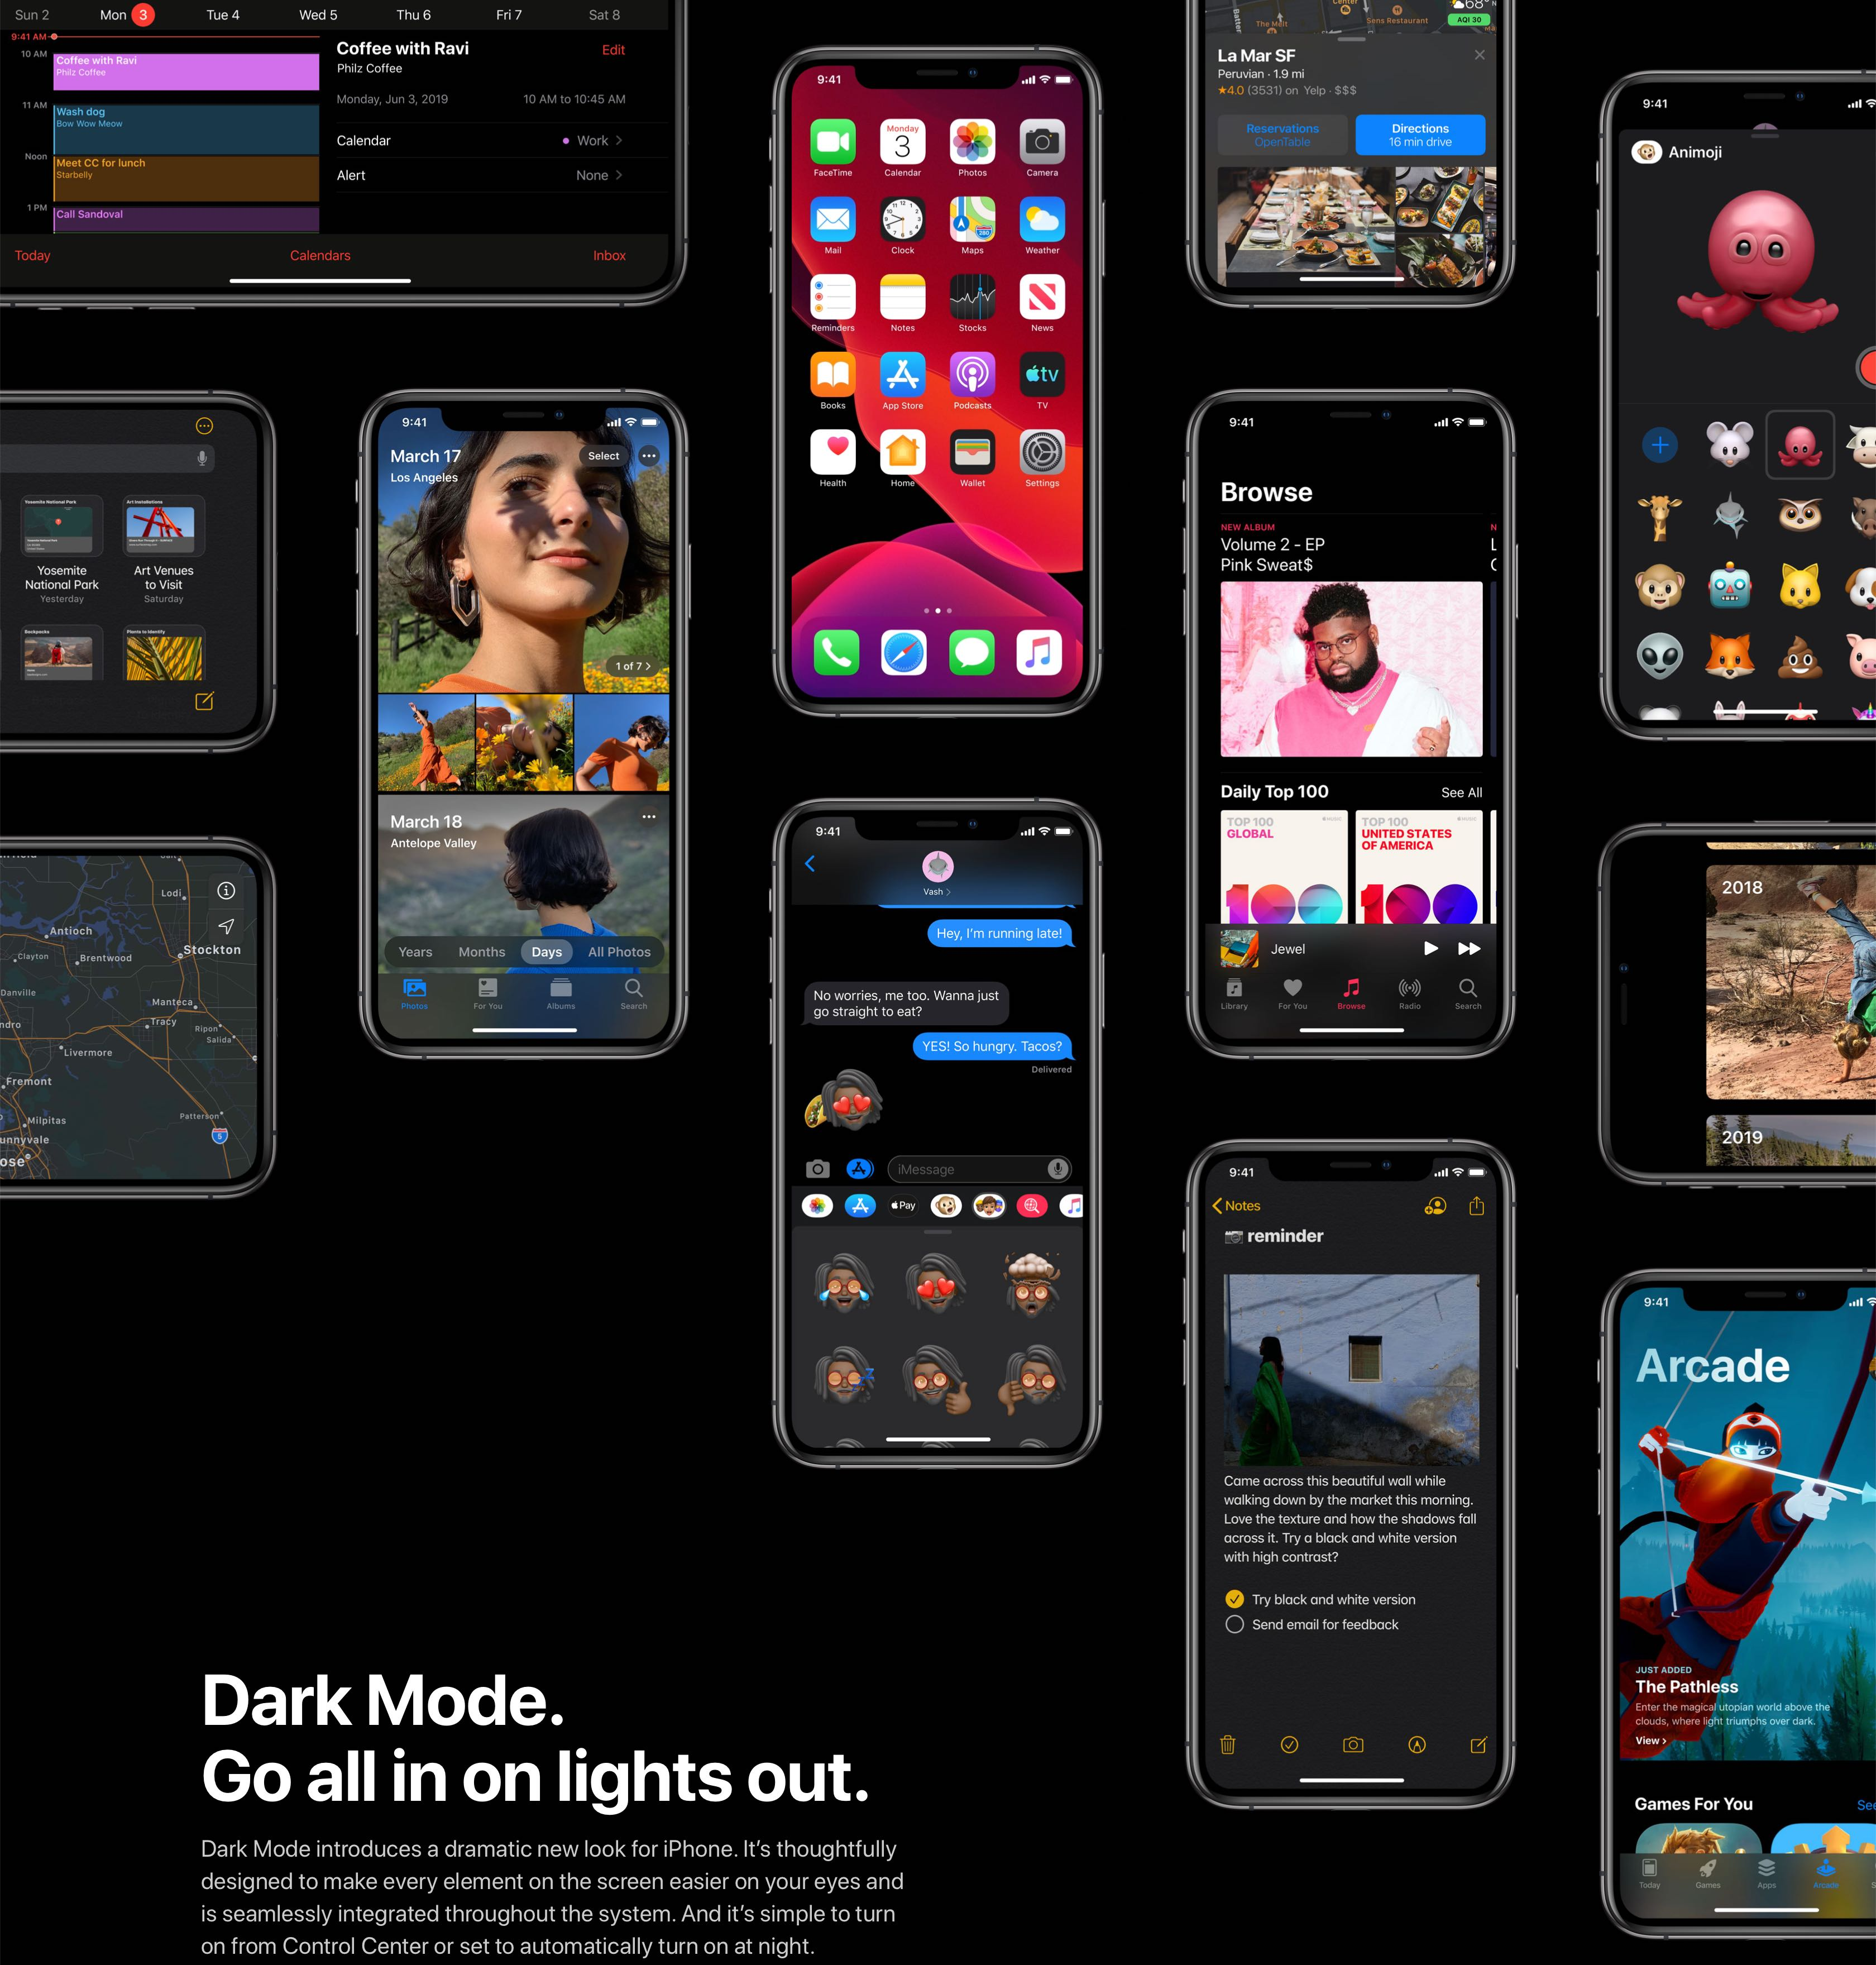 iOS 13's system-wide Dark Mode brings a quick Control Center